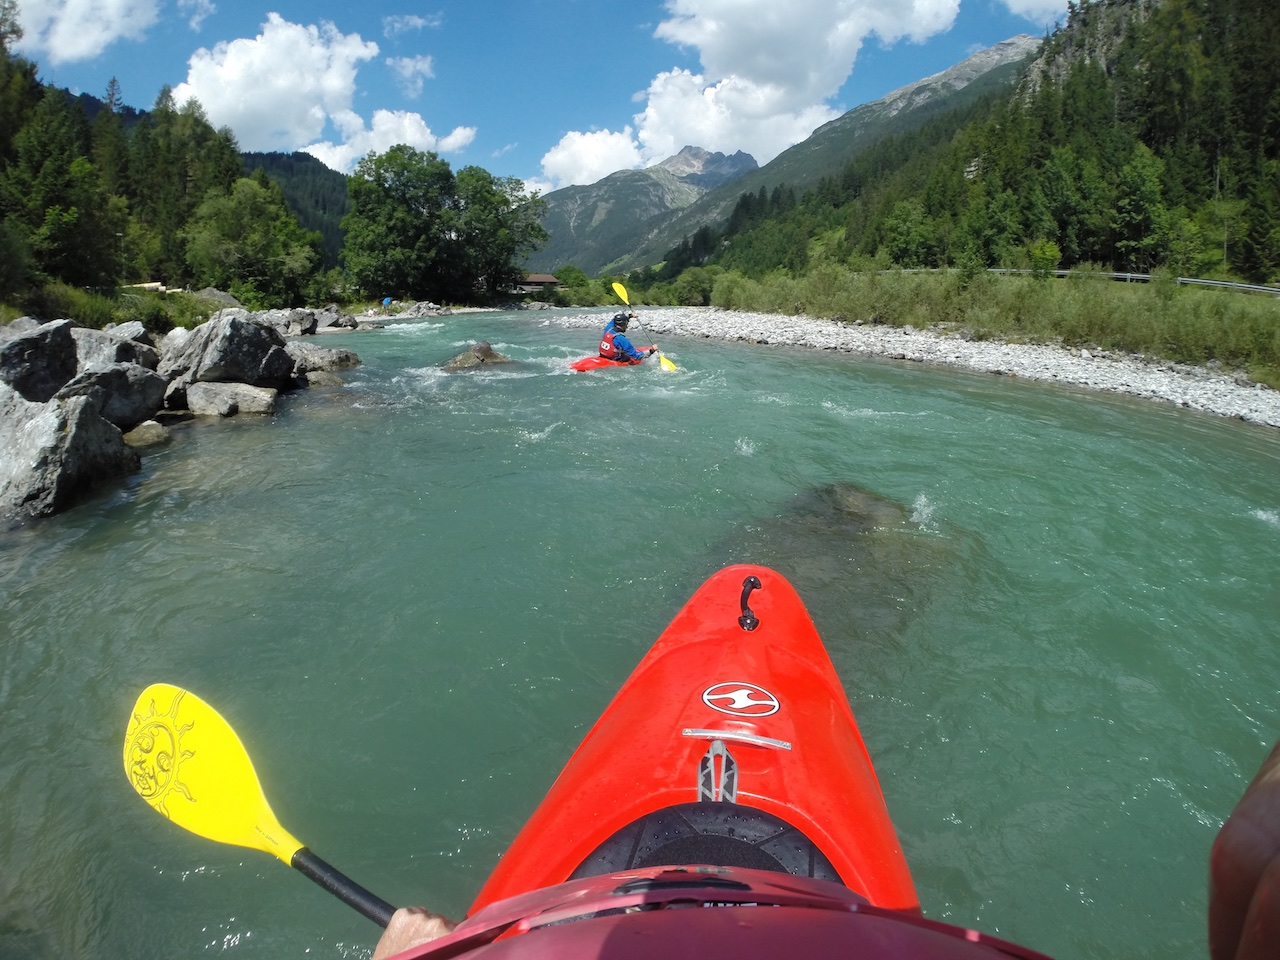 Kayaking-Lech-River.jpg